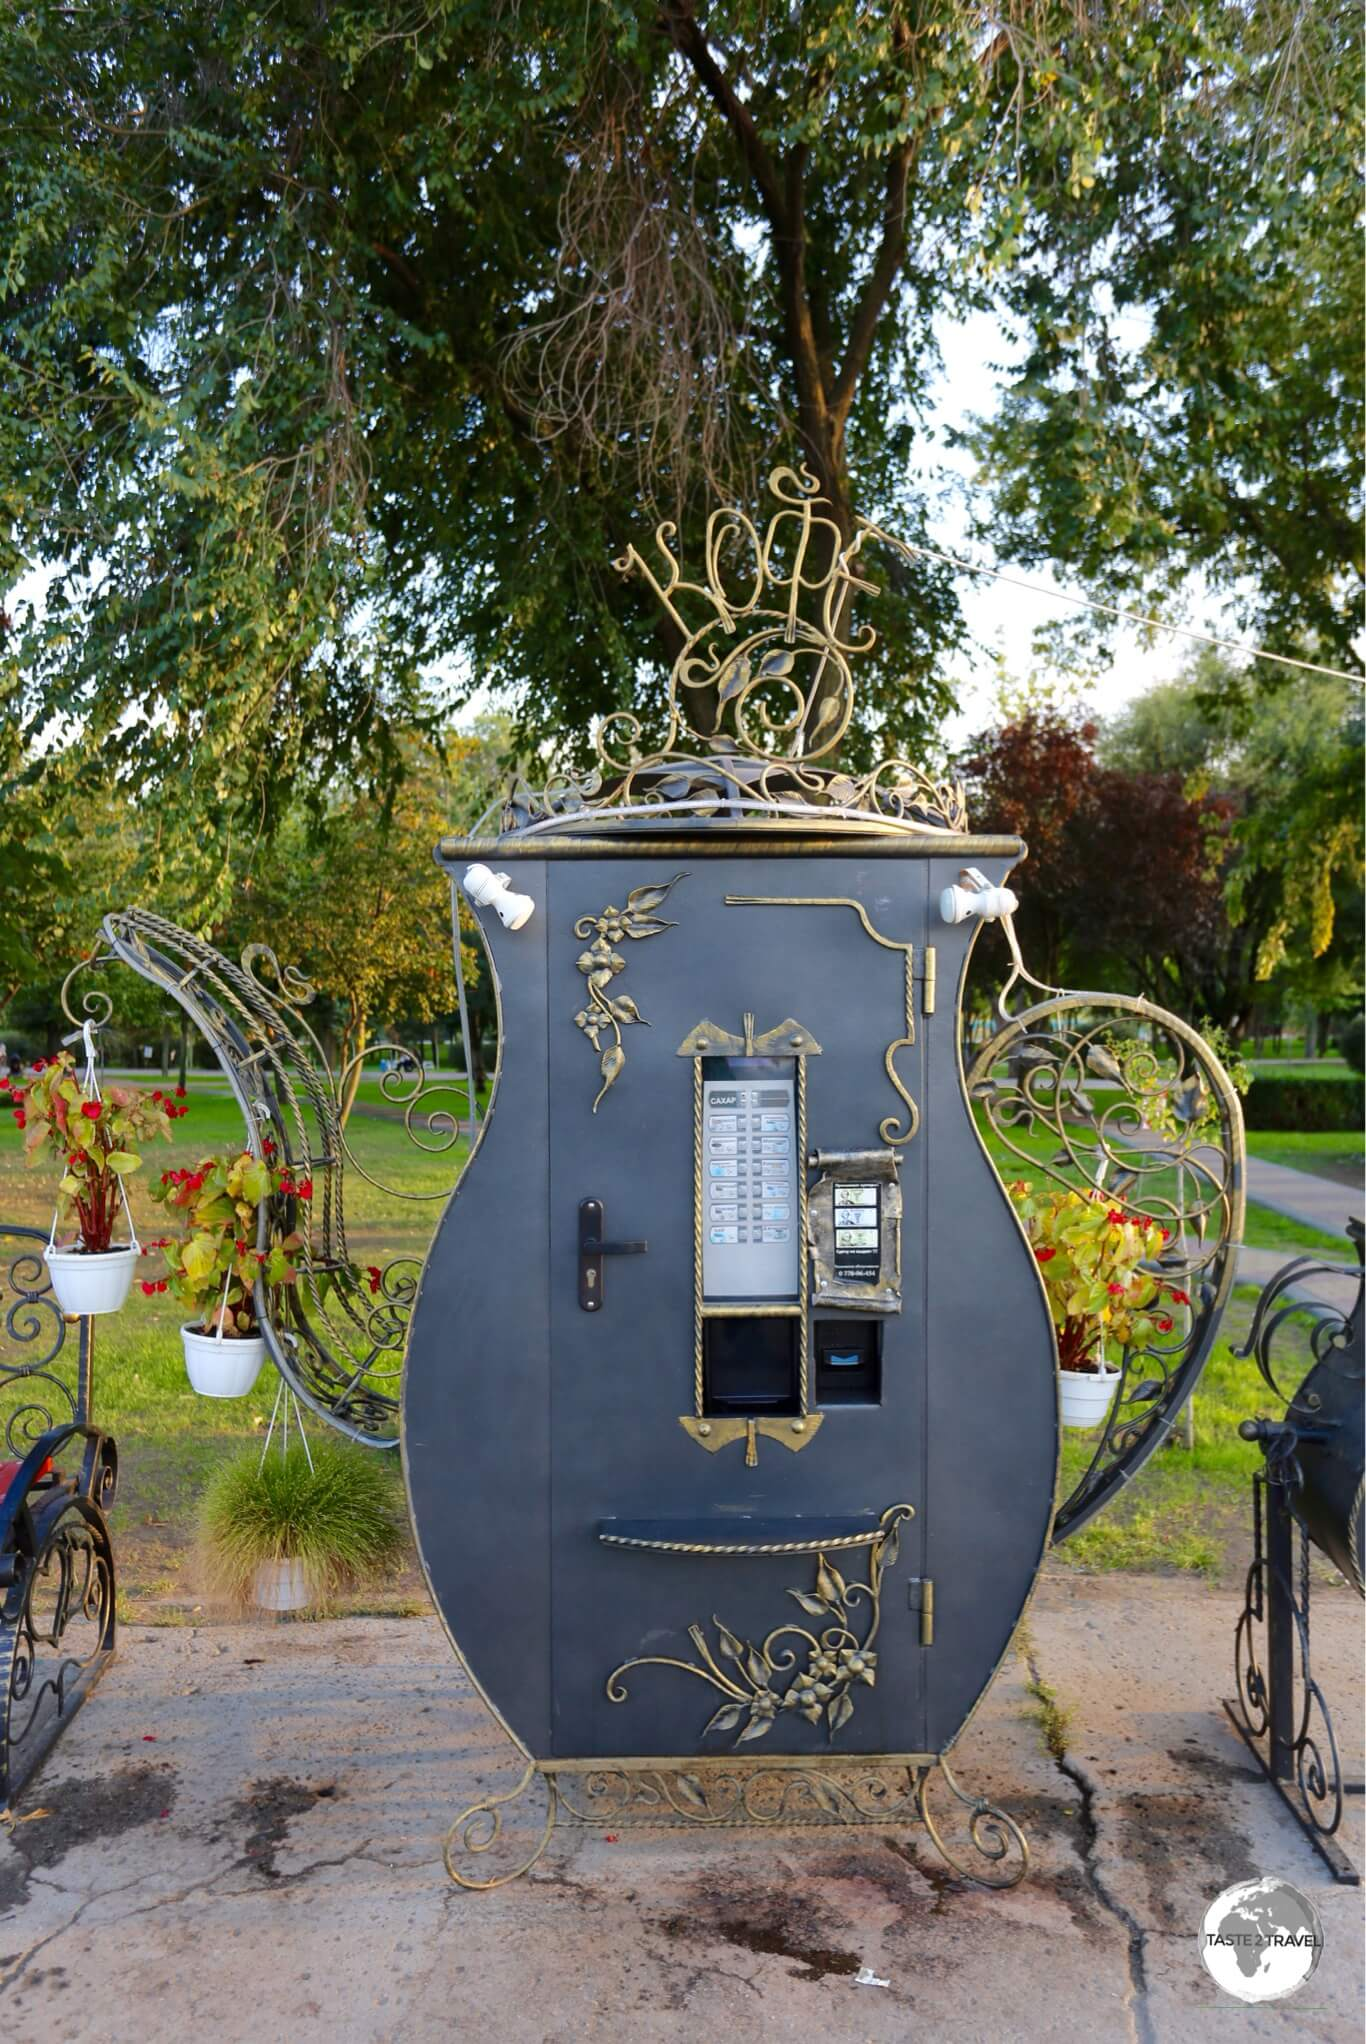 An ornate coffee vending machine in Tiraspol.